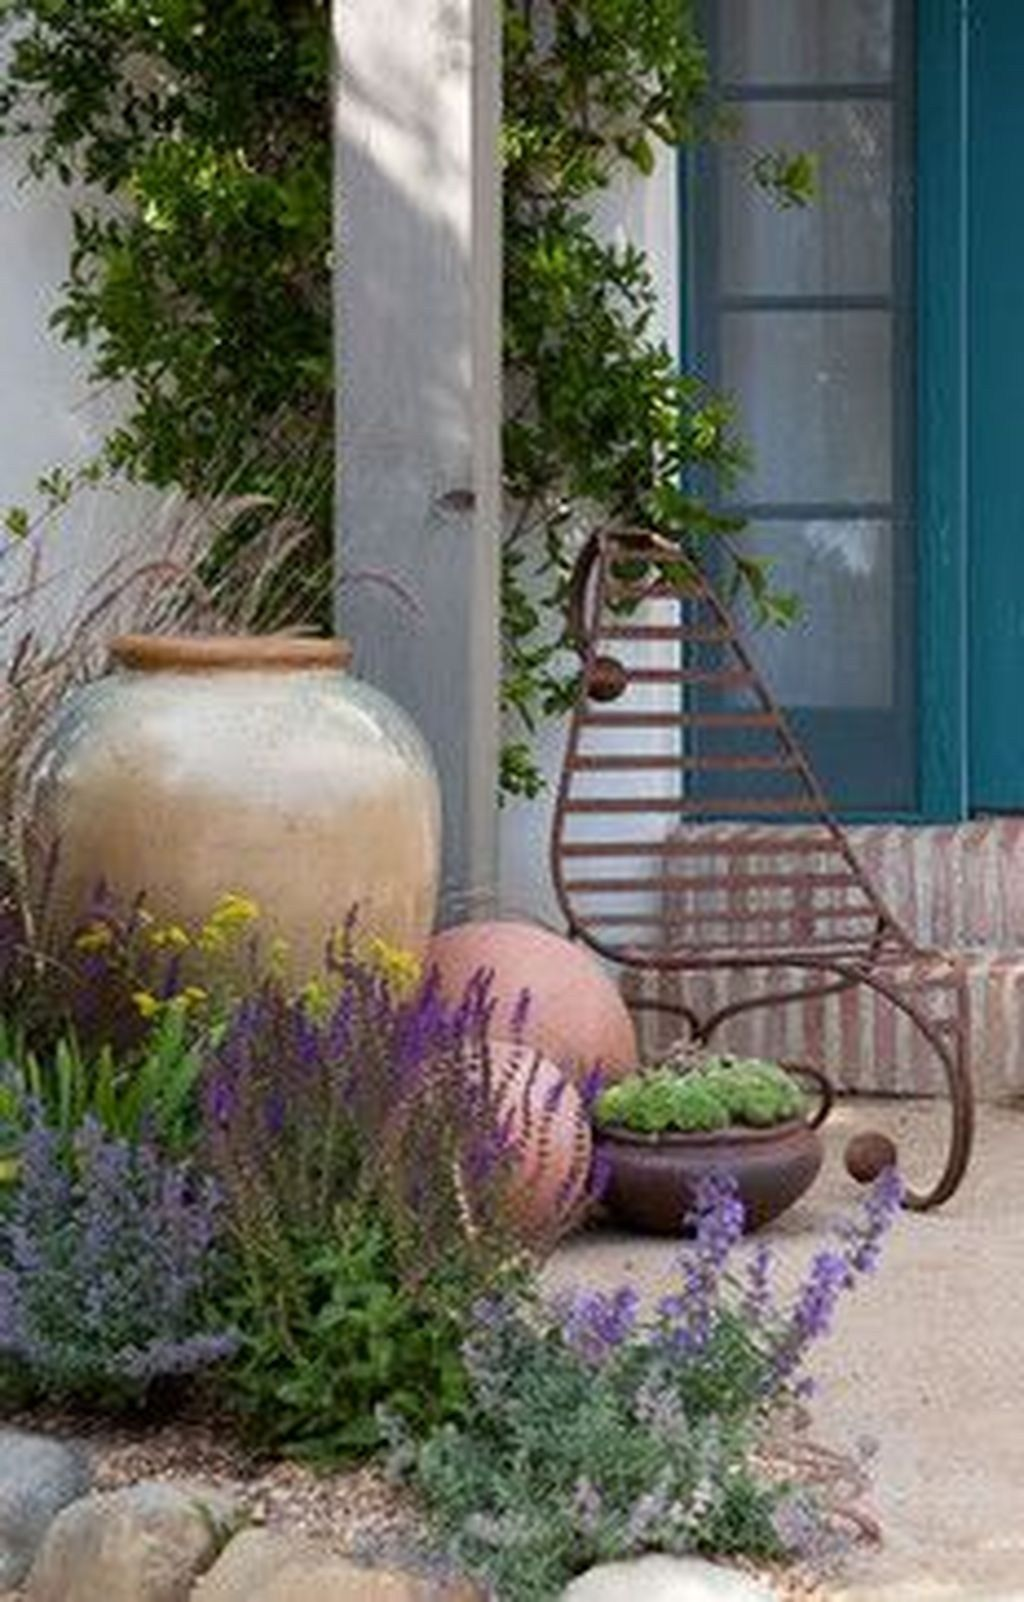 50 + Inspiring Small Courtyard Garden Design for Your House #smallcourtyardgardens